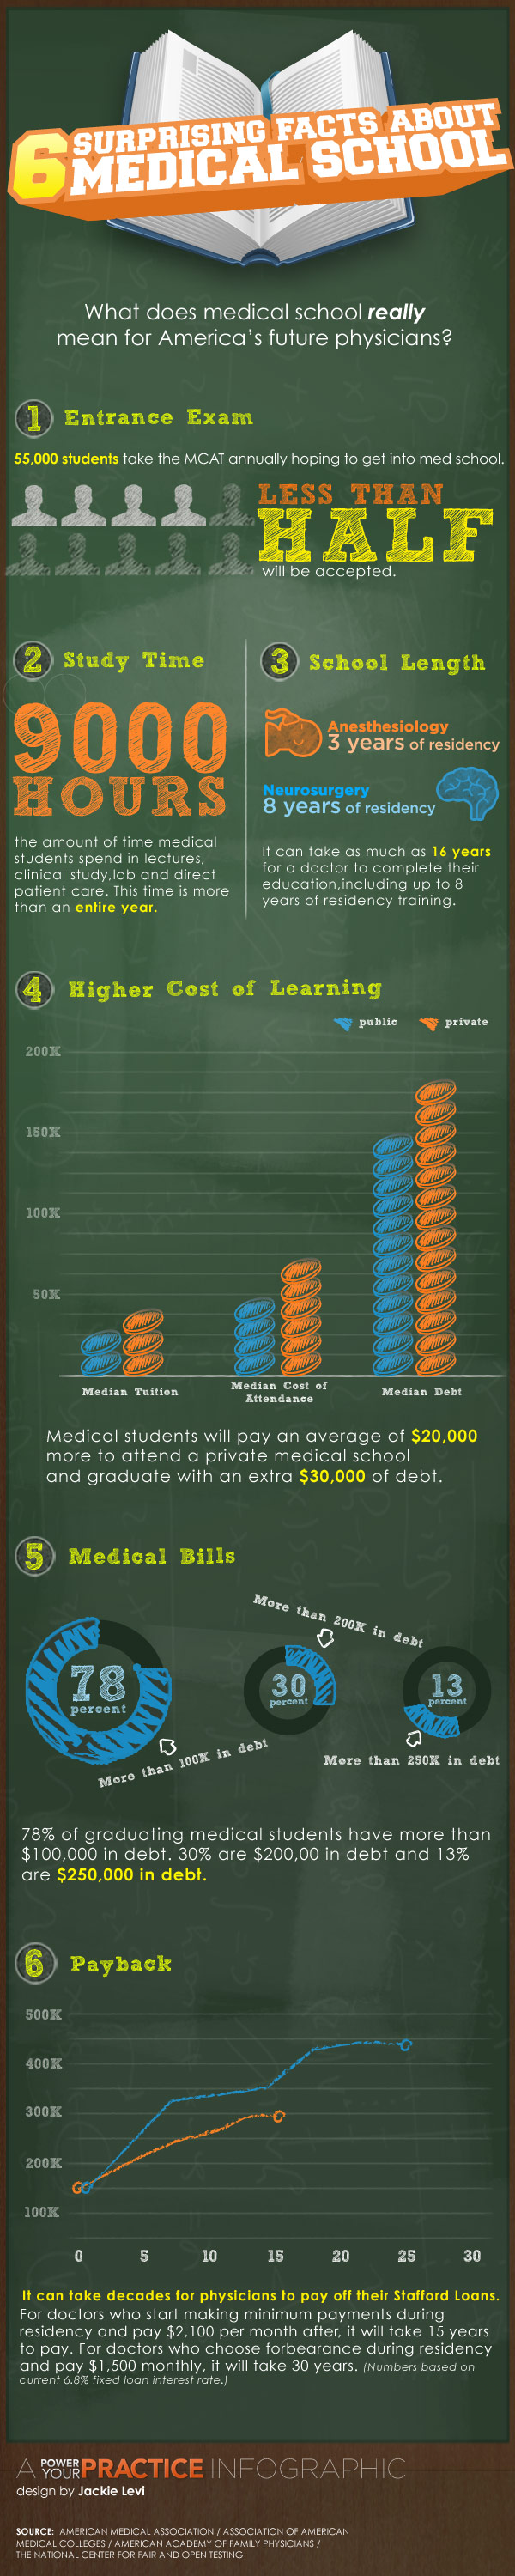 Facts About Medical School Students